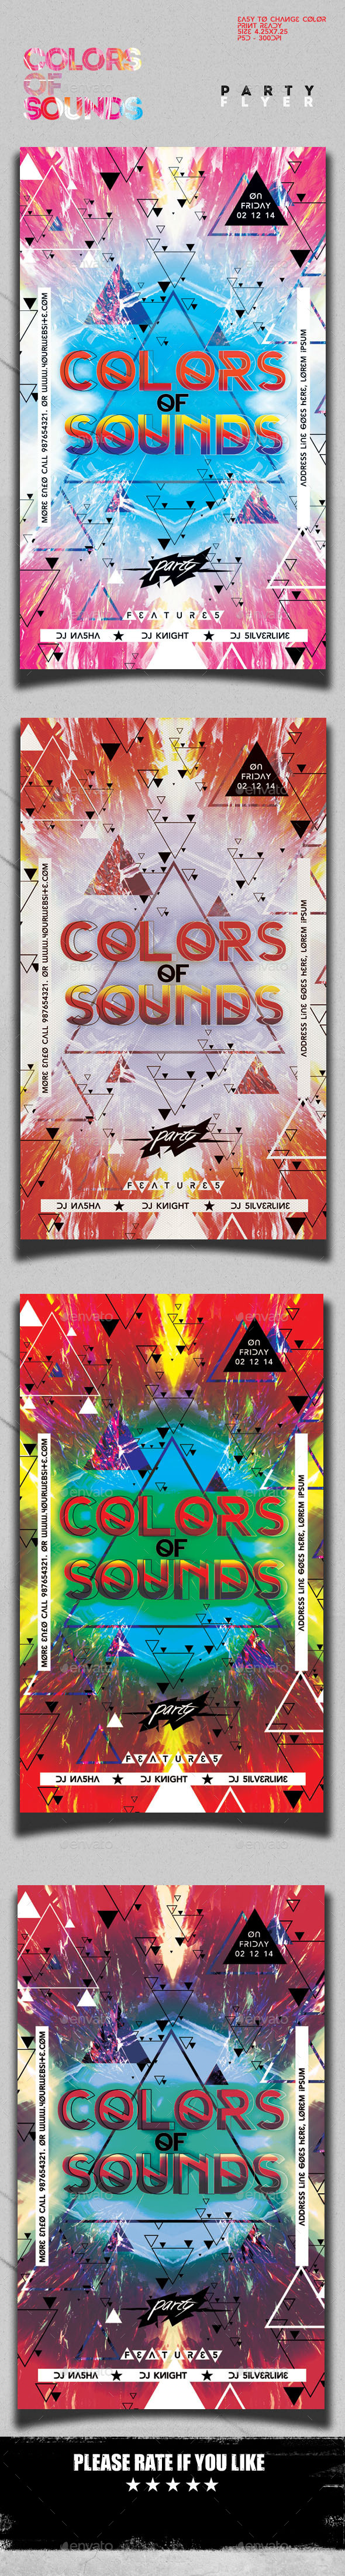 Colors of Sounds Flyer Template - Clubs & Parties Events